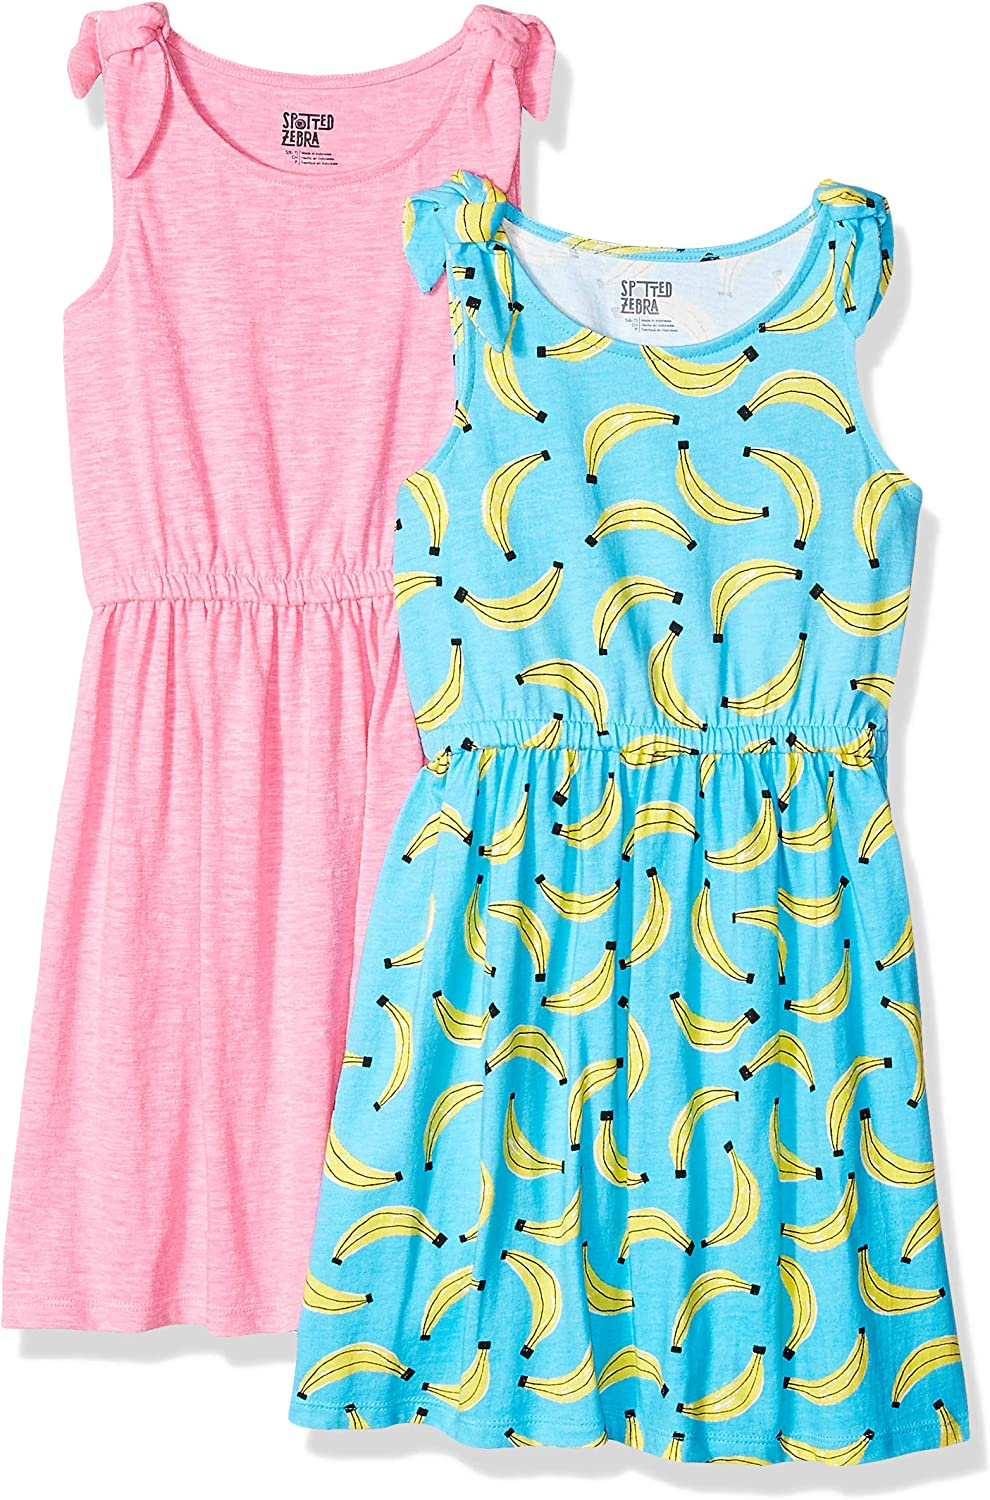 Brand Spotted Zebra Girls Knit Sleeveless Fit and Flare Dresses